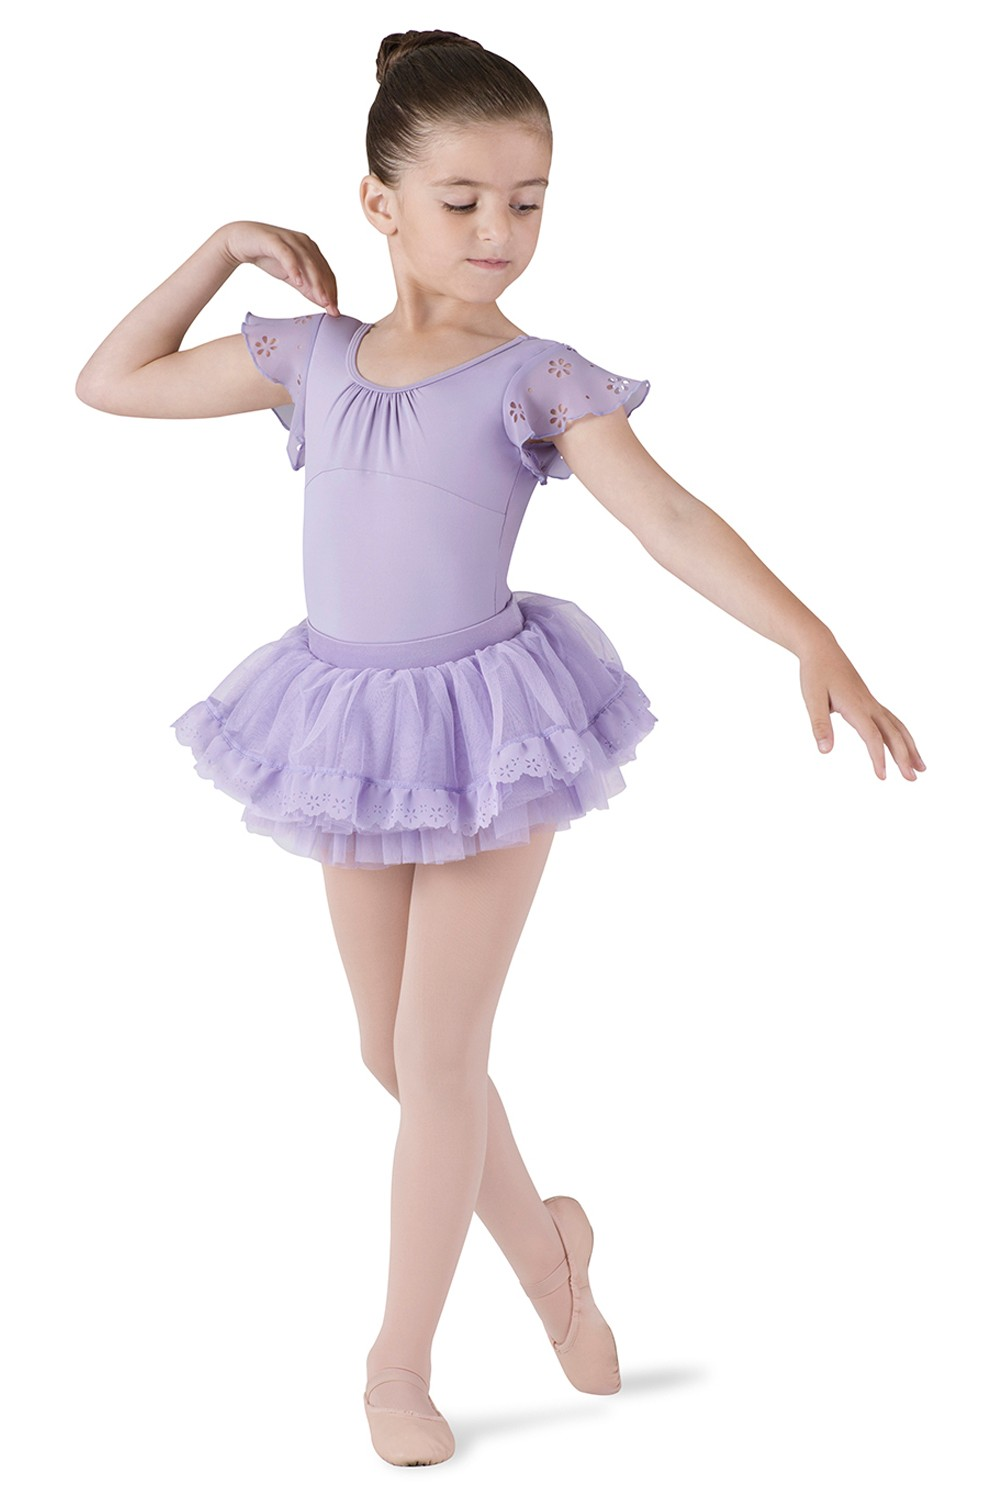 Tutu Skirt With Applique Children's Dance Skirts